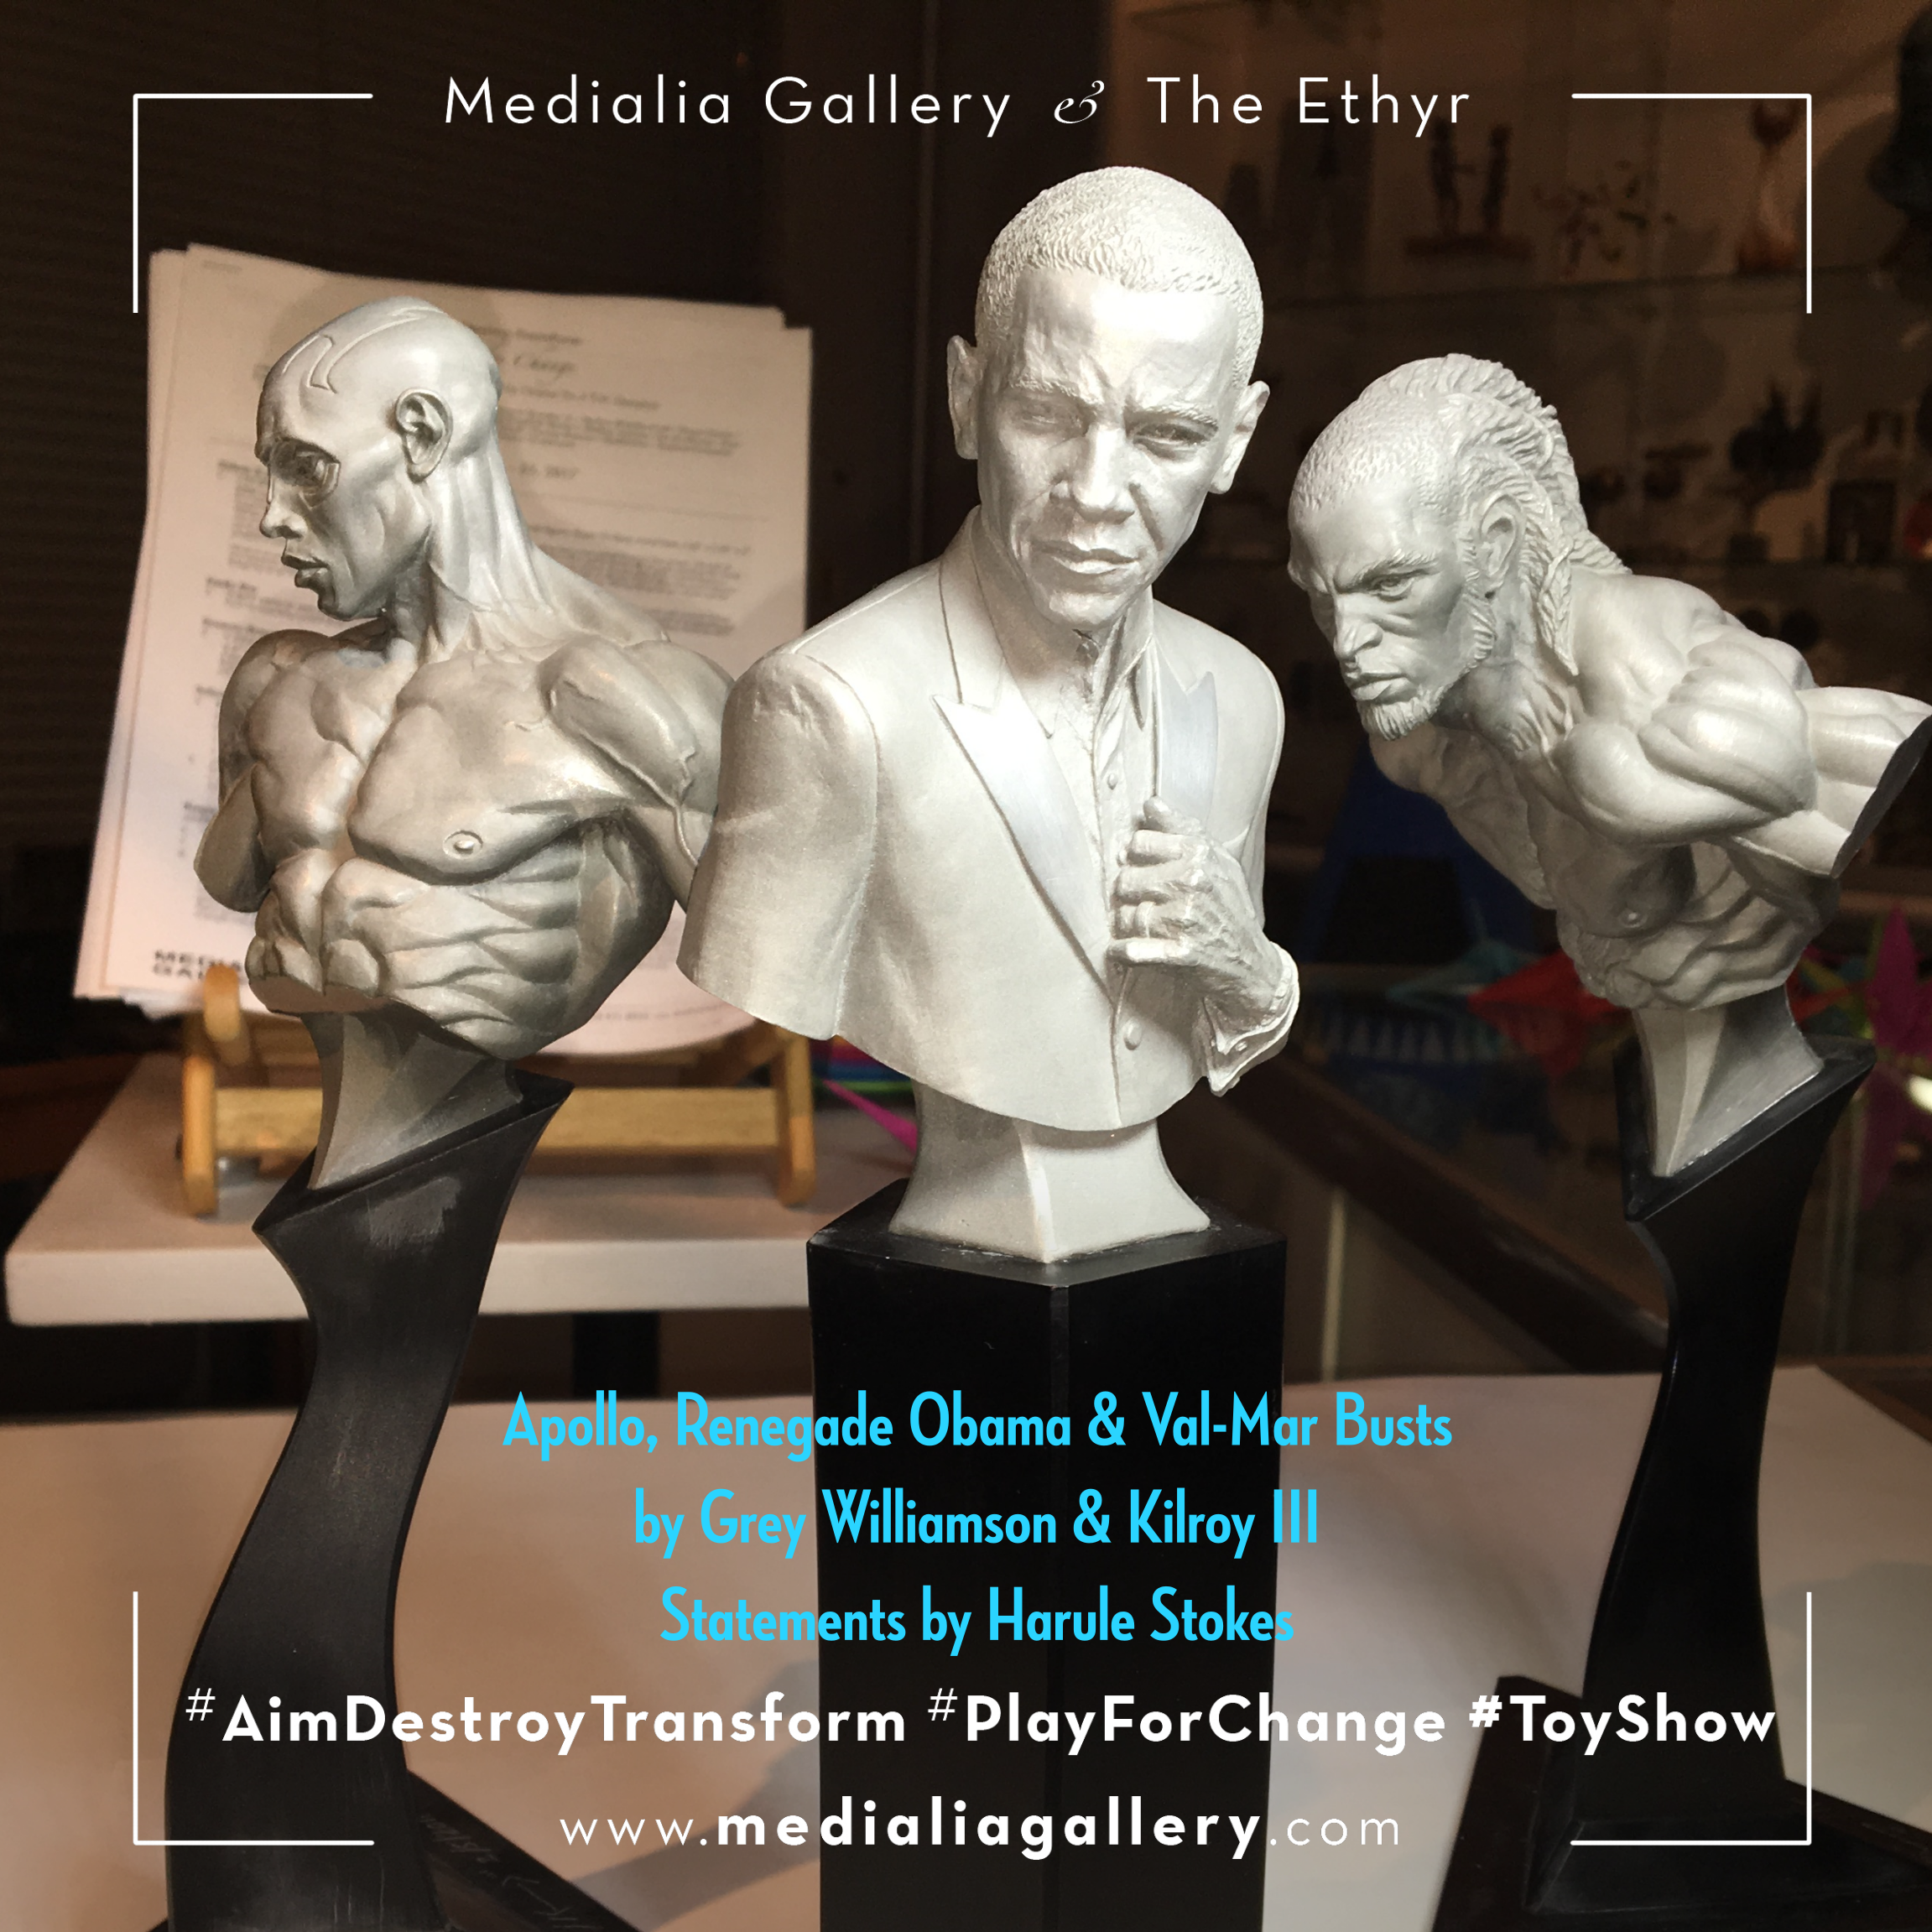 MedialiaGallery_The_Ethyr_AimDestroyTransform_Toy_Valmar_Obama_Renegade_Apollo_Bust_GreyWilliamson_KilroyIII_HaruleStokes_November_2017.png